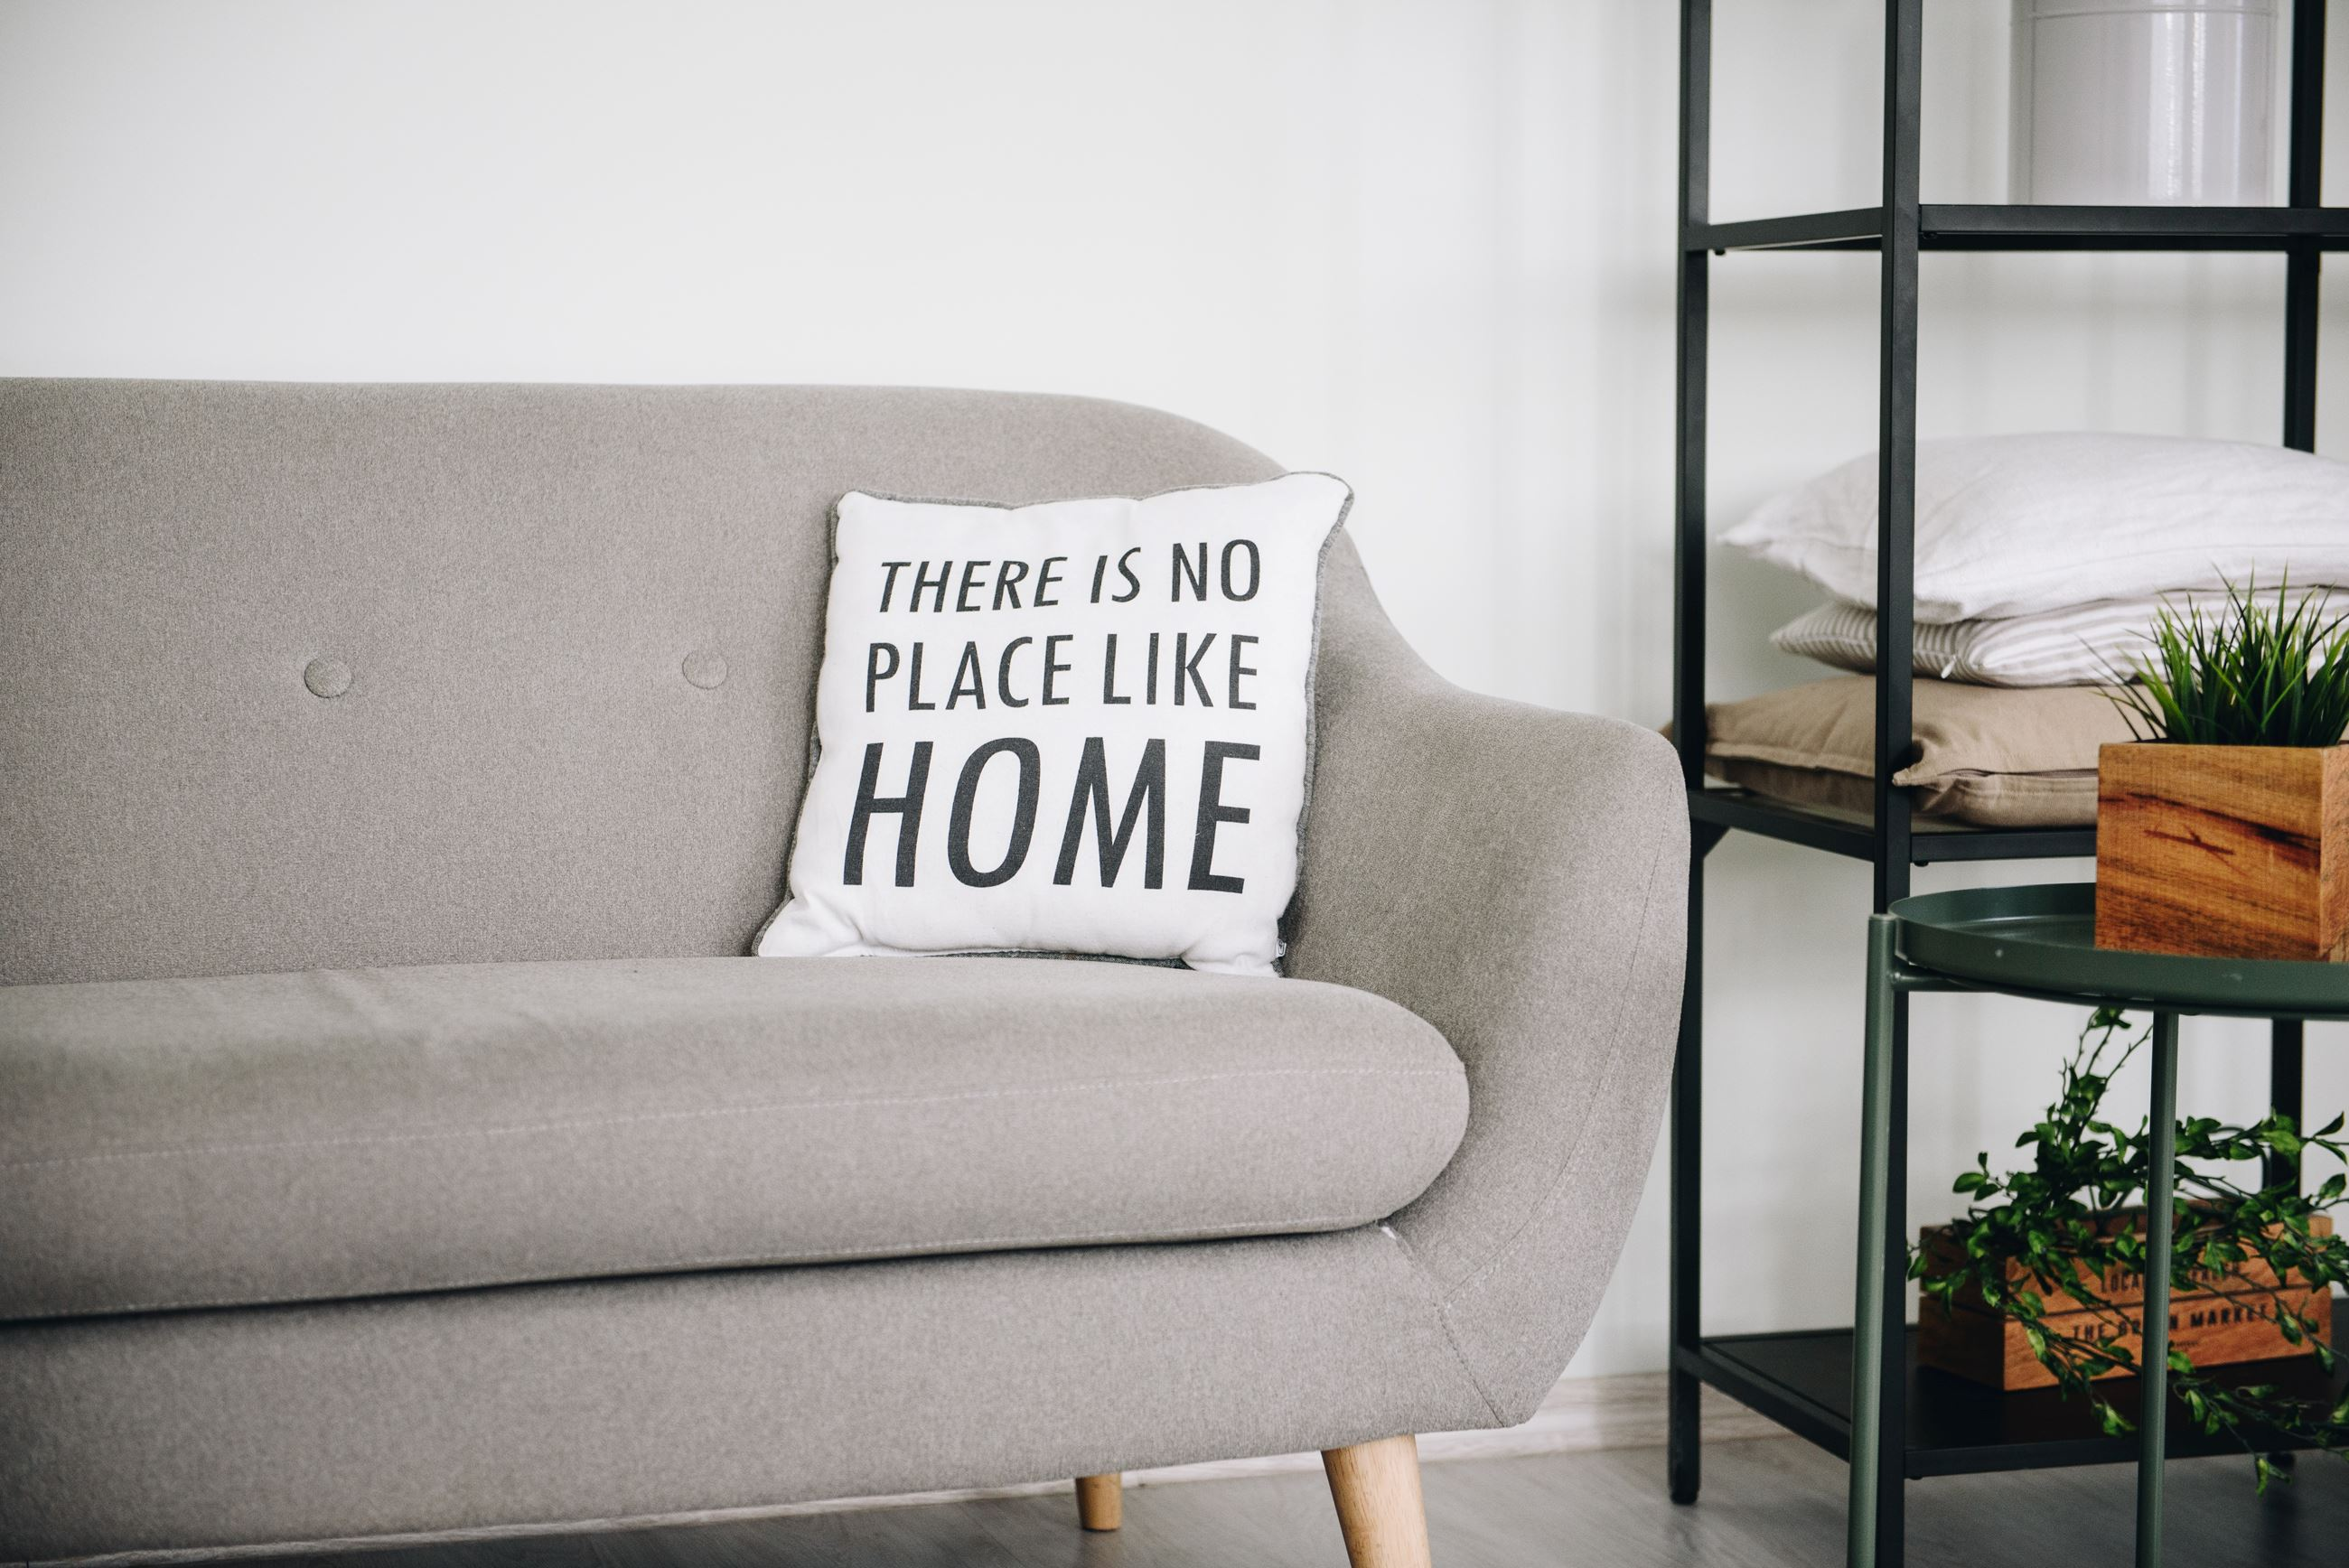 """No Place Like Home"" photo courtesy of Anastasiia Chepinska/unsplash.com"